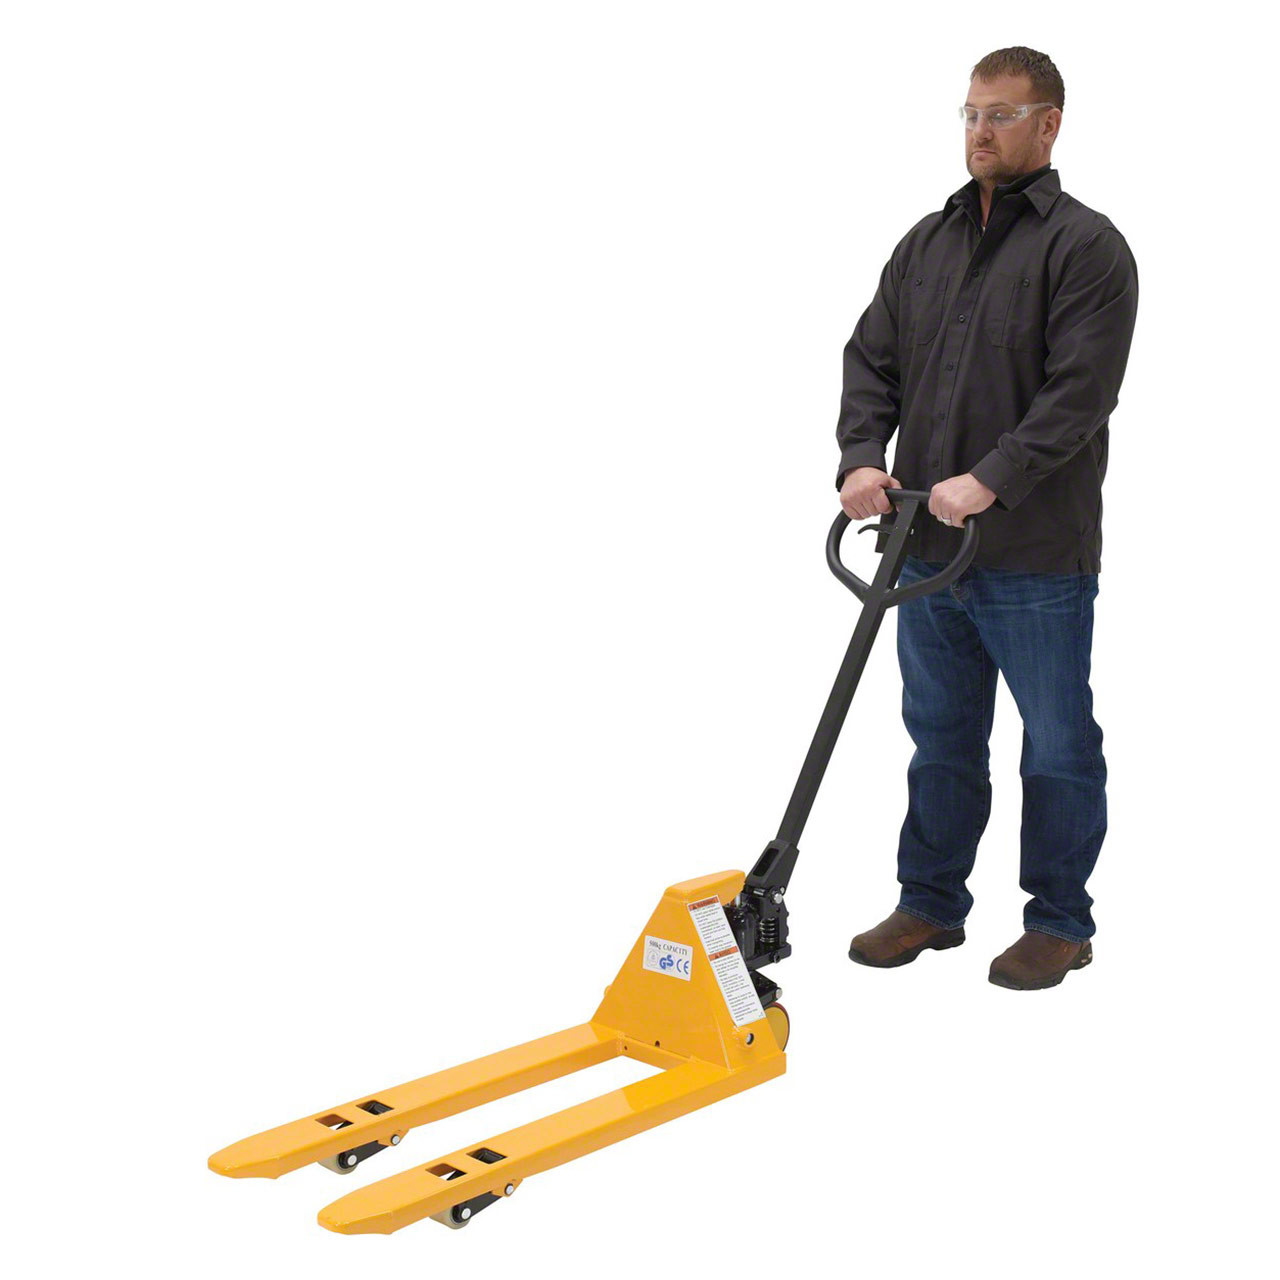 Easy to operation, the PM1-1532-MINI pallet jack has a smaller footprint